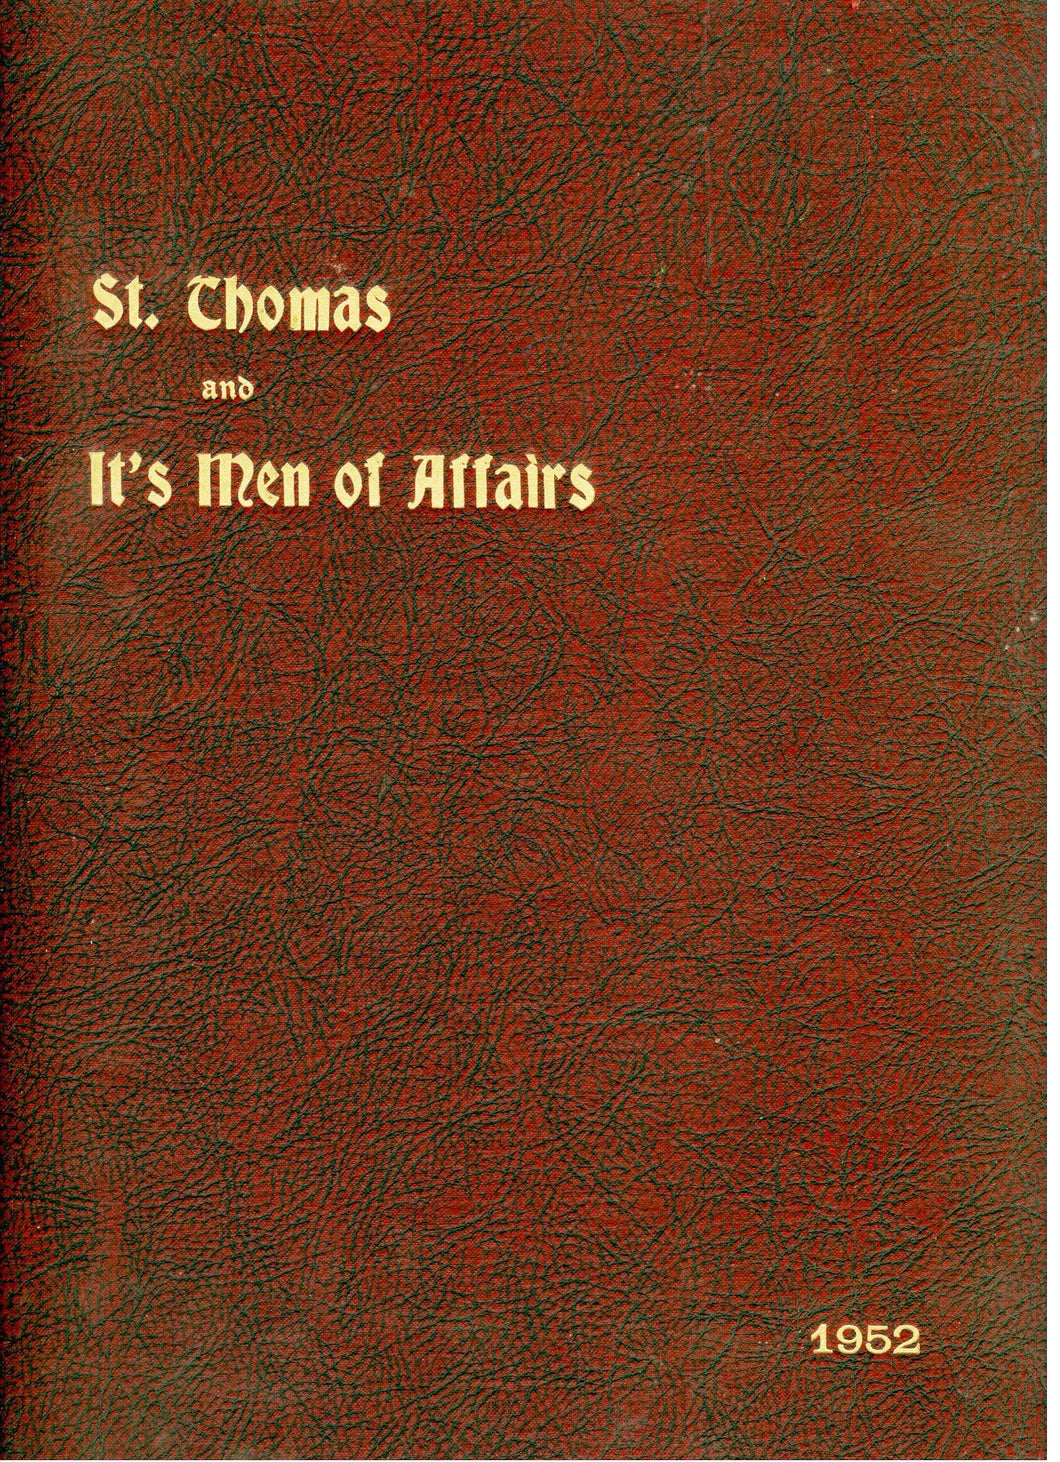 St. Thomas and Its Men of Affairs